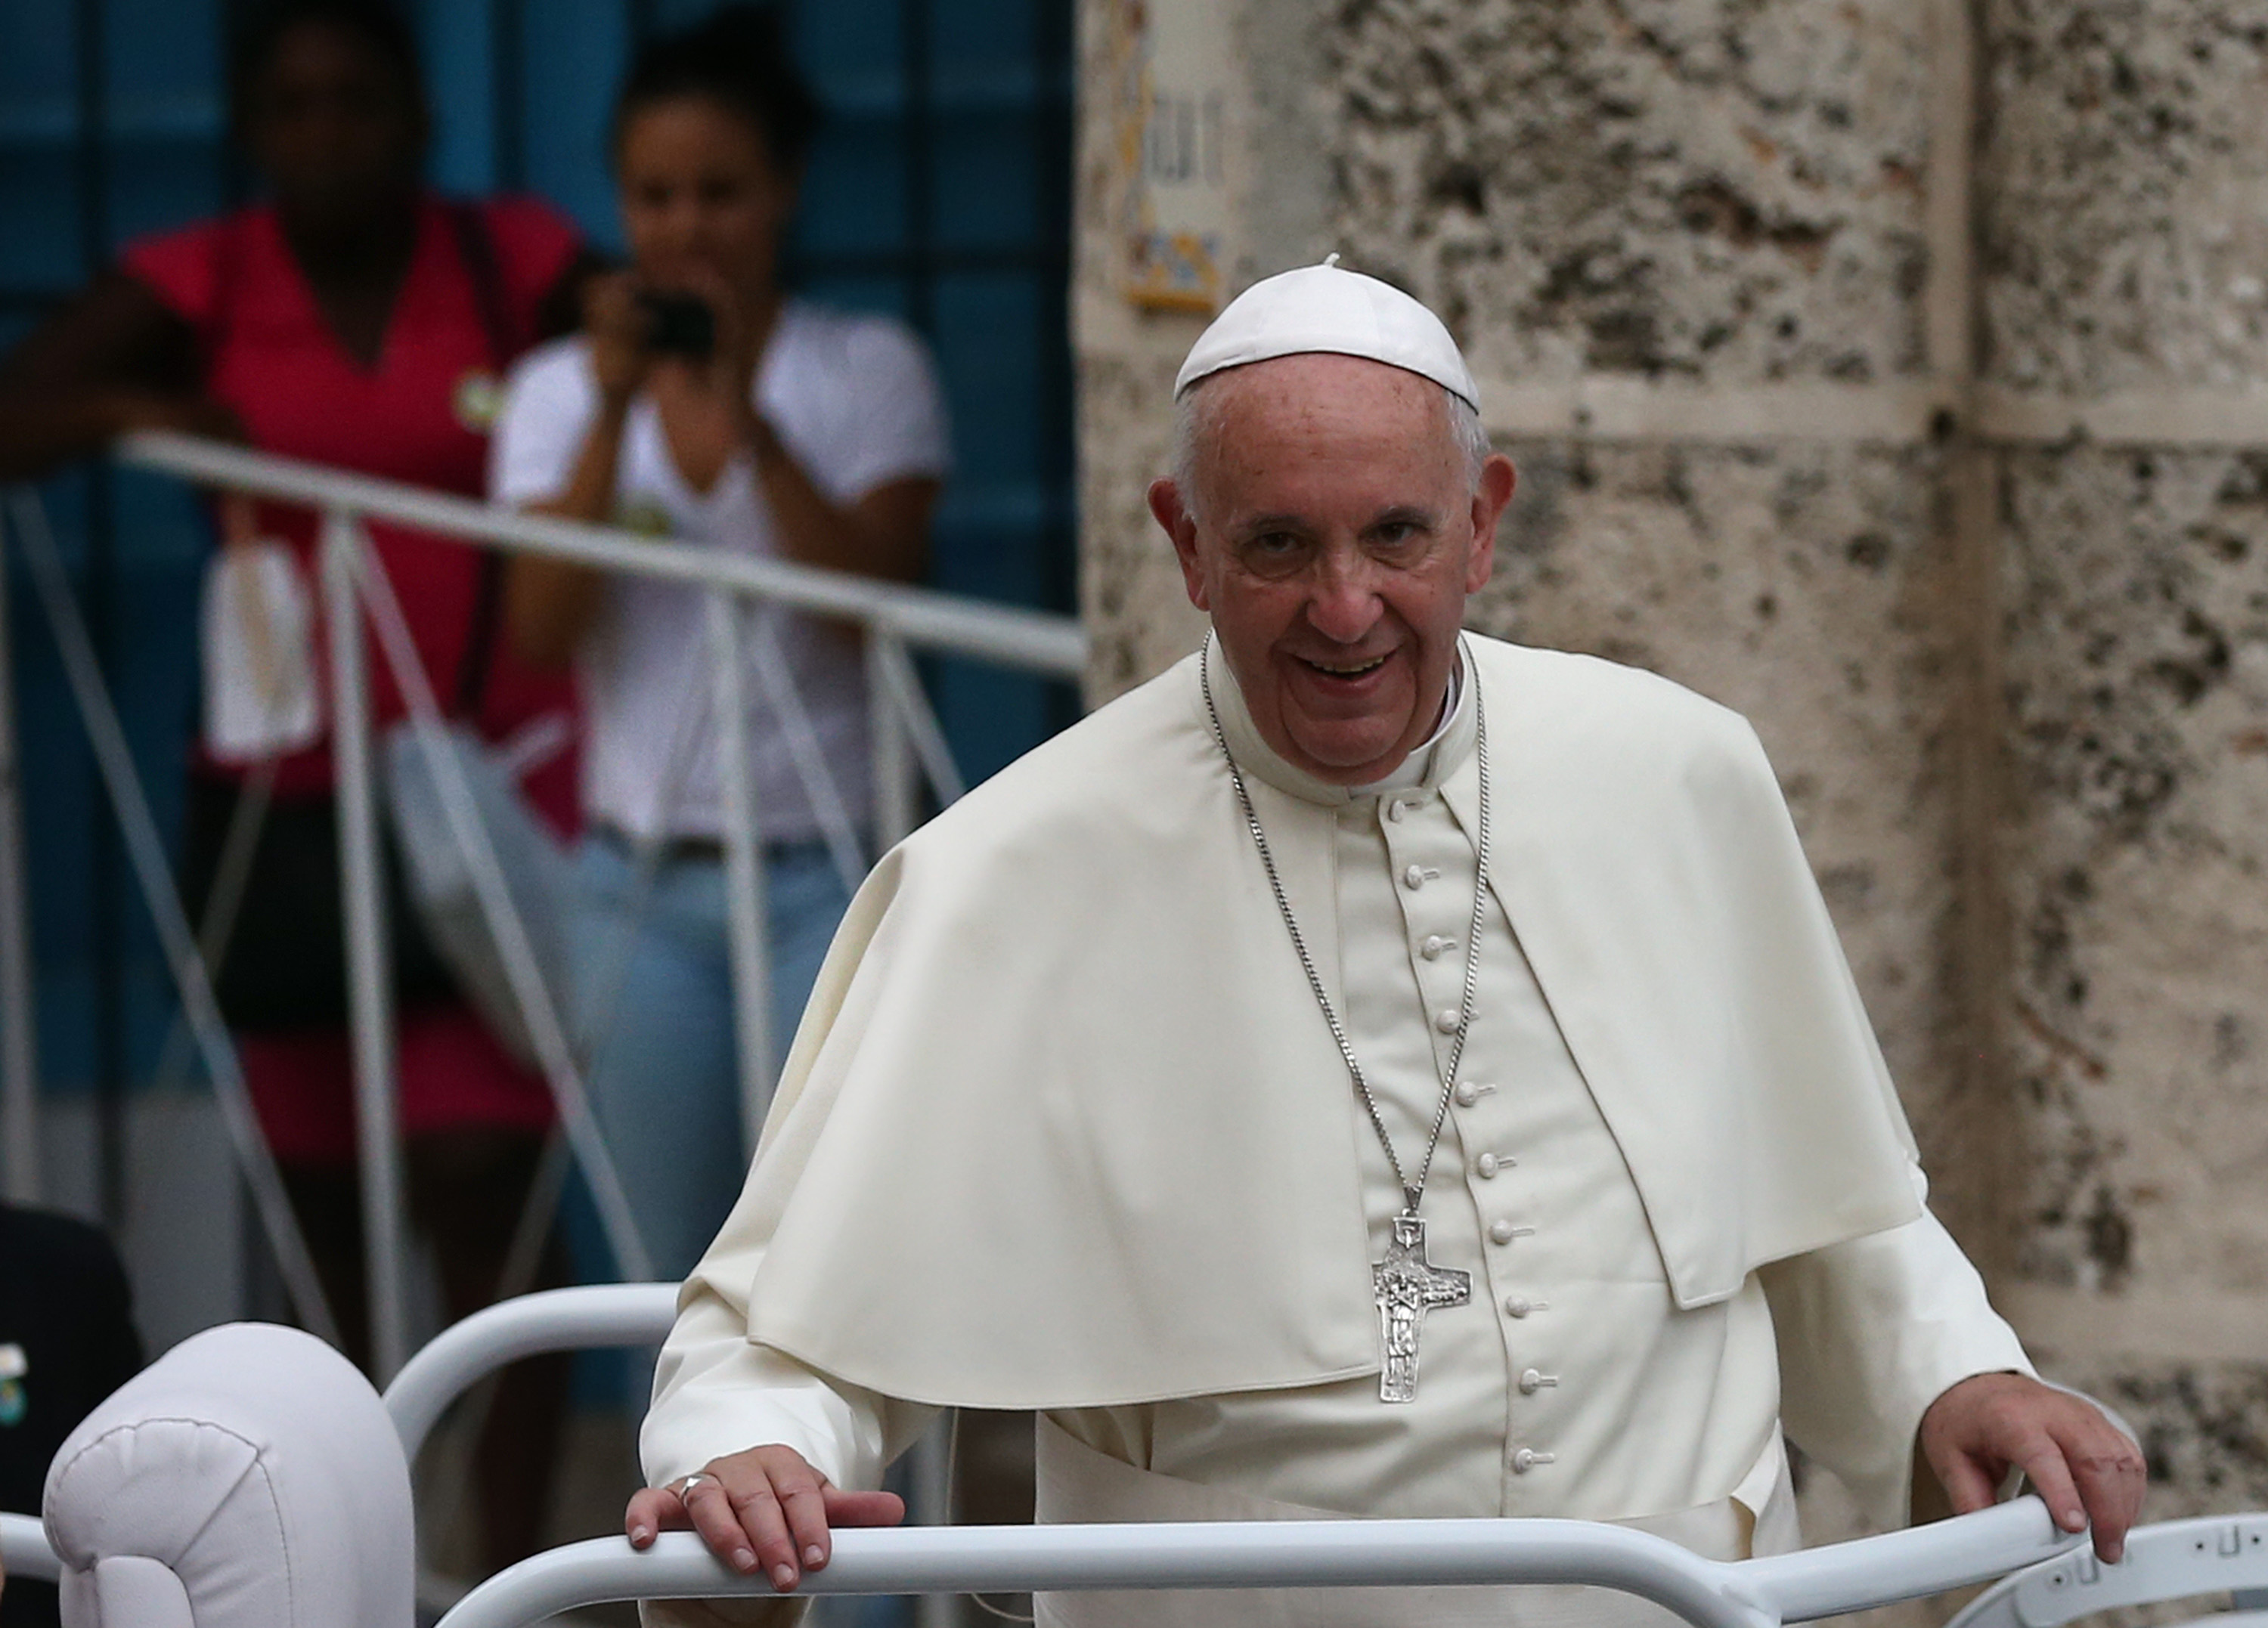 Pope Francis looks out from his Popemobile as he arrives at Havana Cathedral in Havana, Cuba on Sept. 20, 2015.